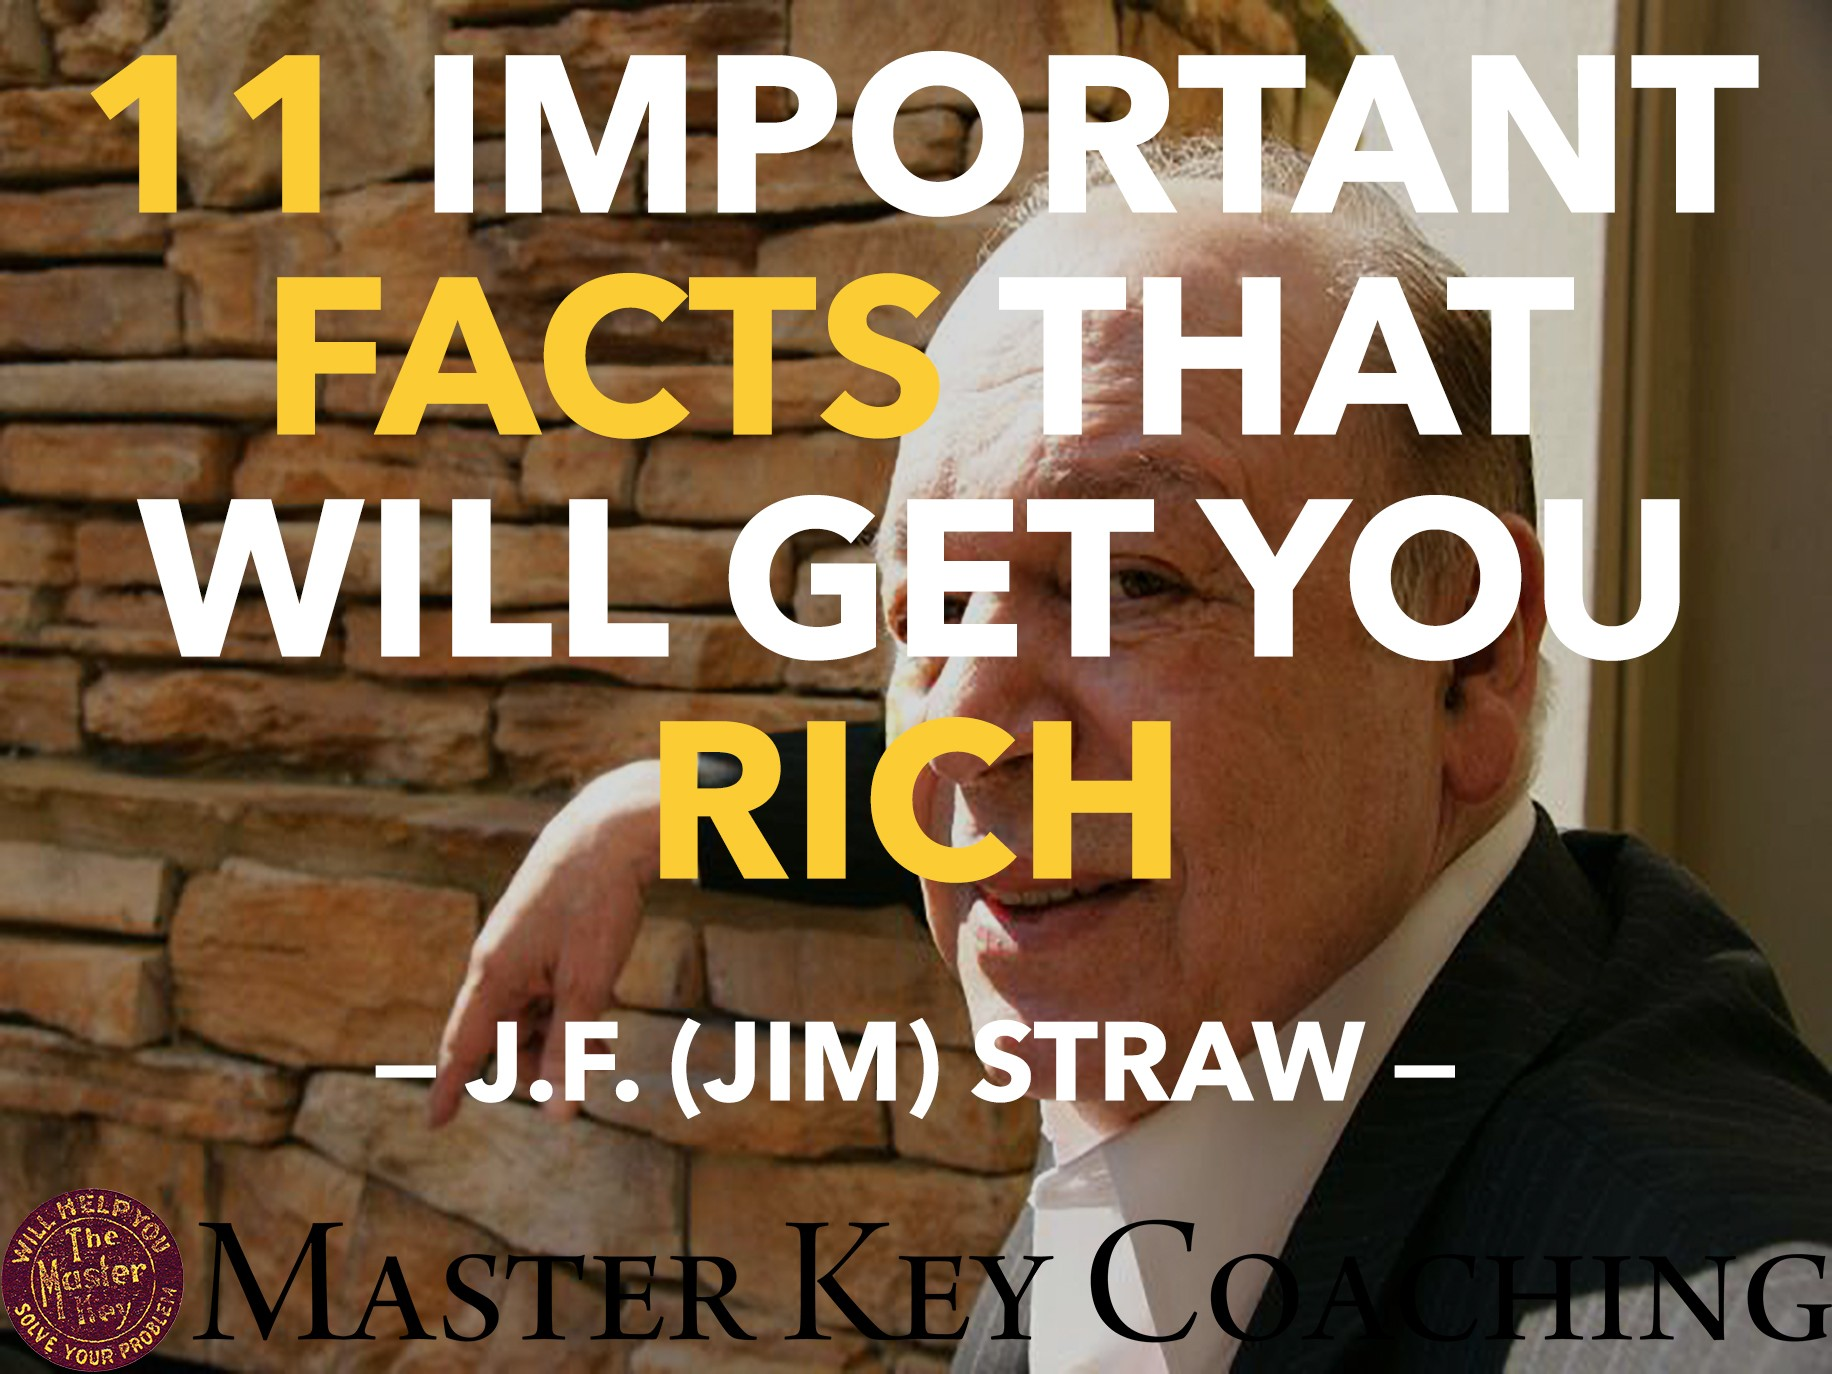 You Can Move Mountains: 11 Important Facts from the Legendary $500,000,000 Man That Will Get You Rich (themasterkeymentor.com)